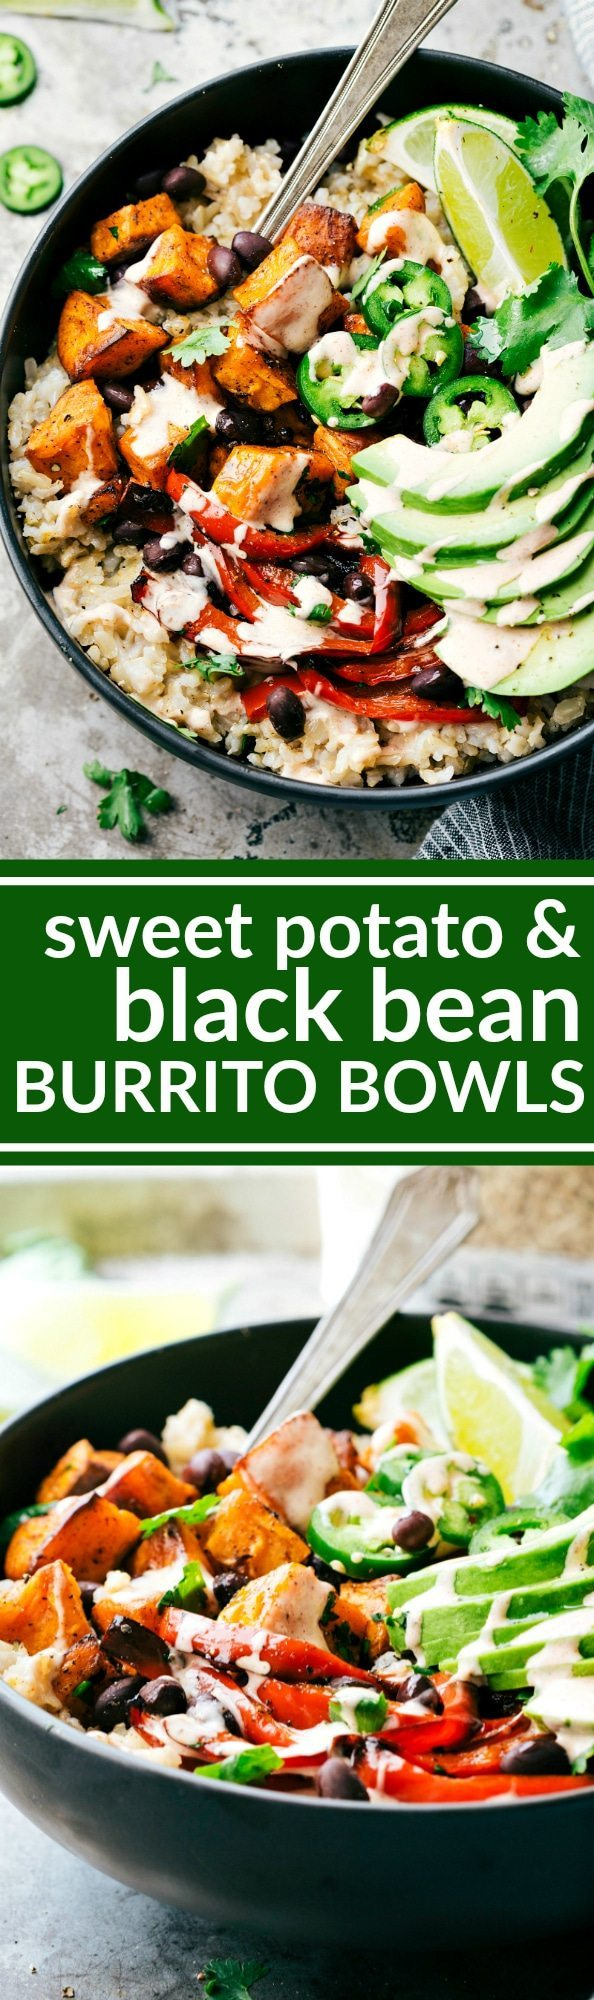 SWEET POTATO BURRITO BOWLS! A delicious and simple to make veggie black bean burrito bowls -- brown rice, seasoned & roasted sweet potatoes + bell peppers, black beans, and avocado with the most incredible chipotle lime sauce. via chelseasmessyapron.com